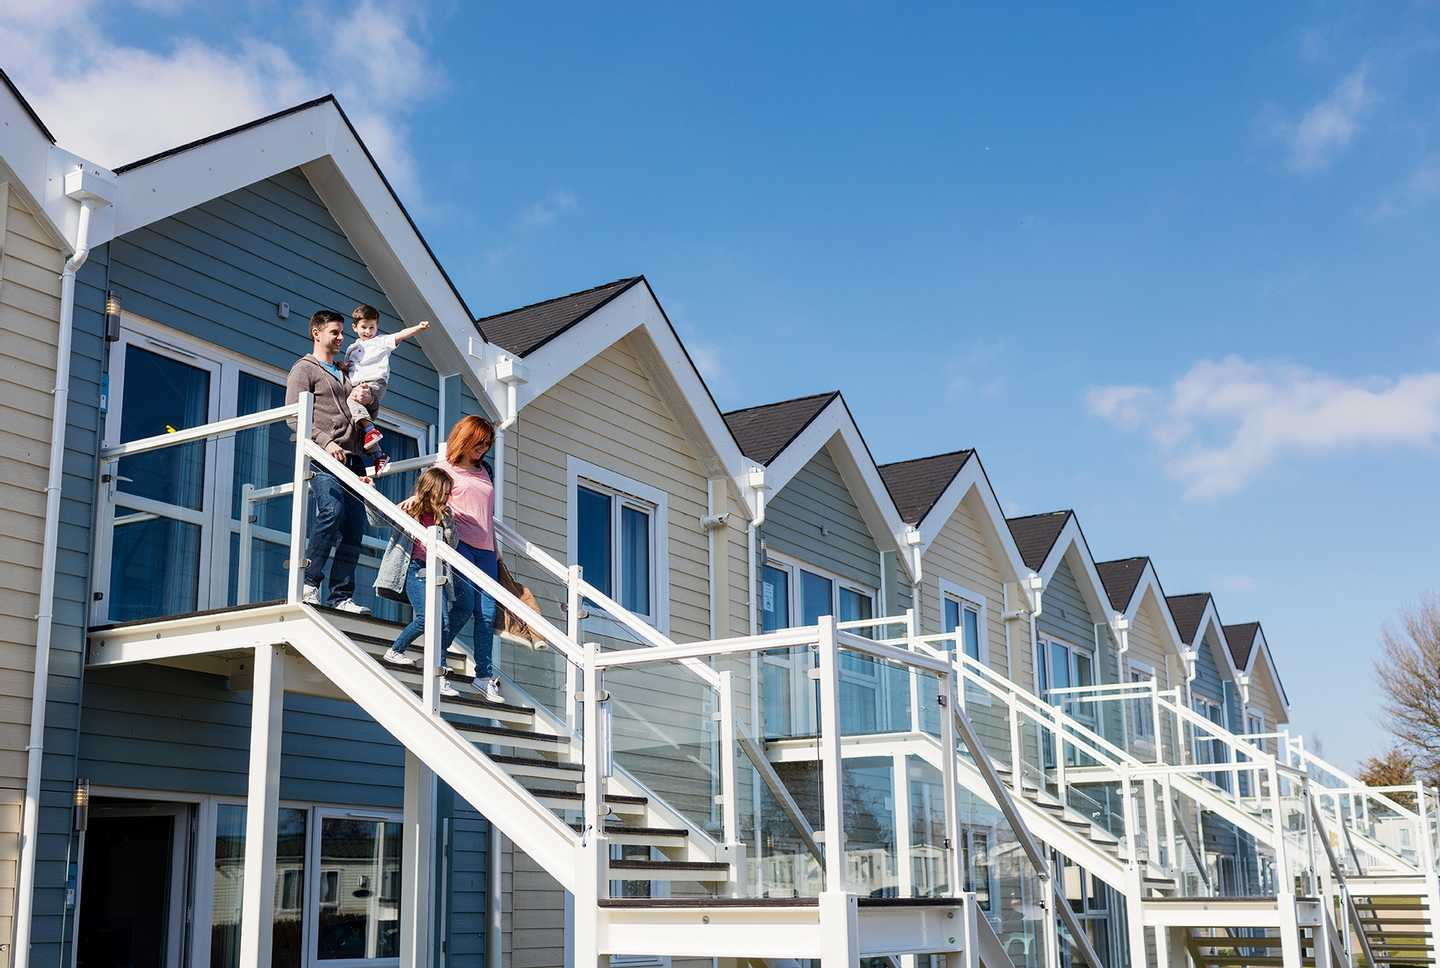 A family walking down the steps of a Deck House on a sunny day